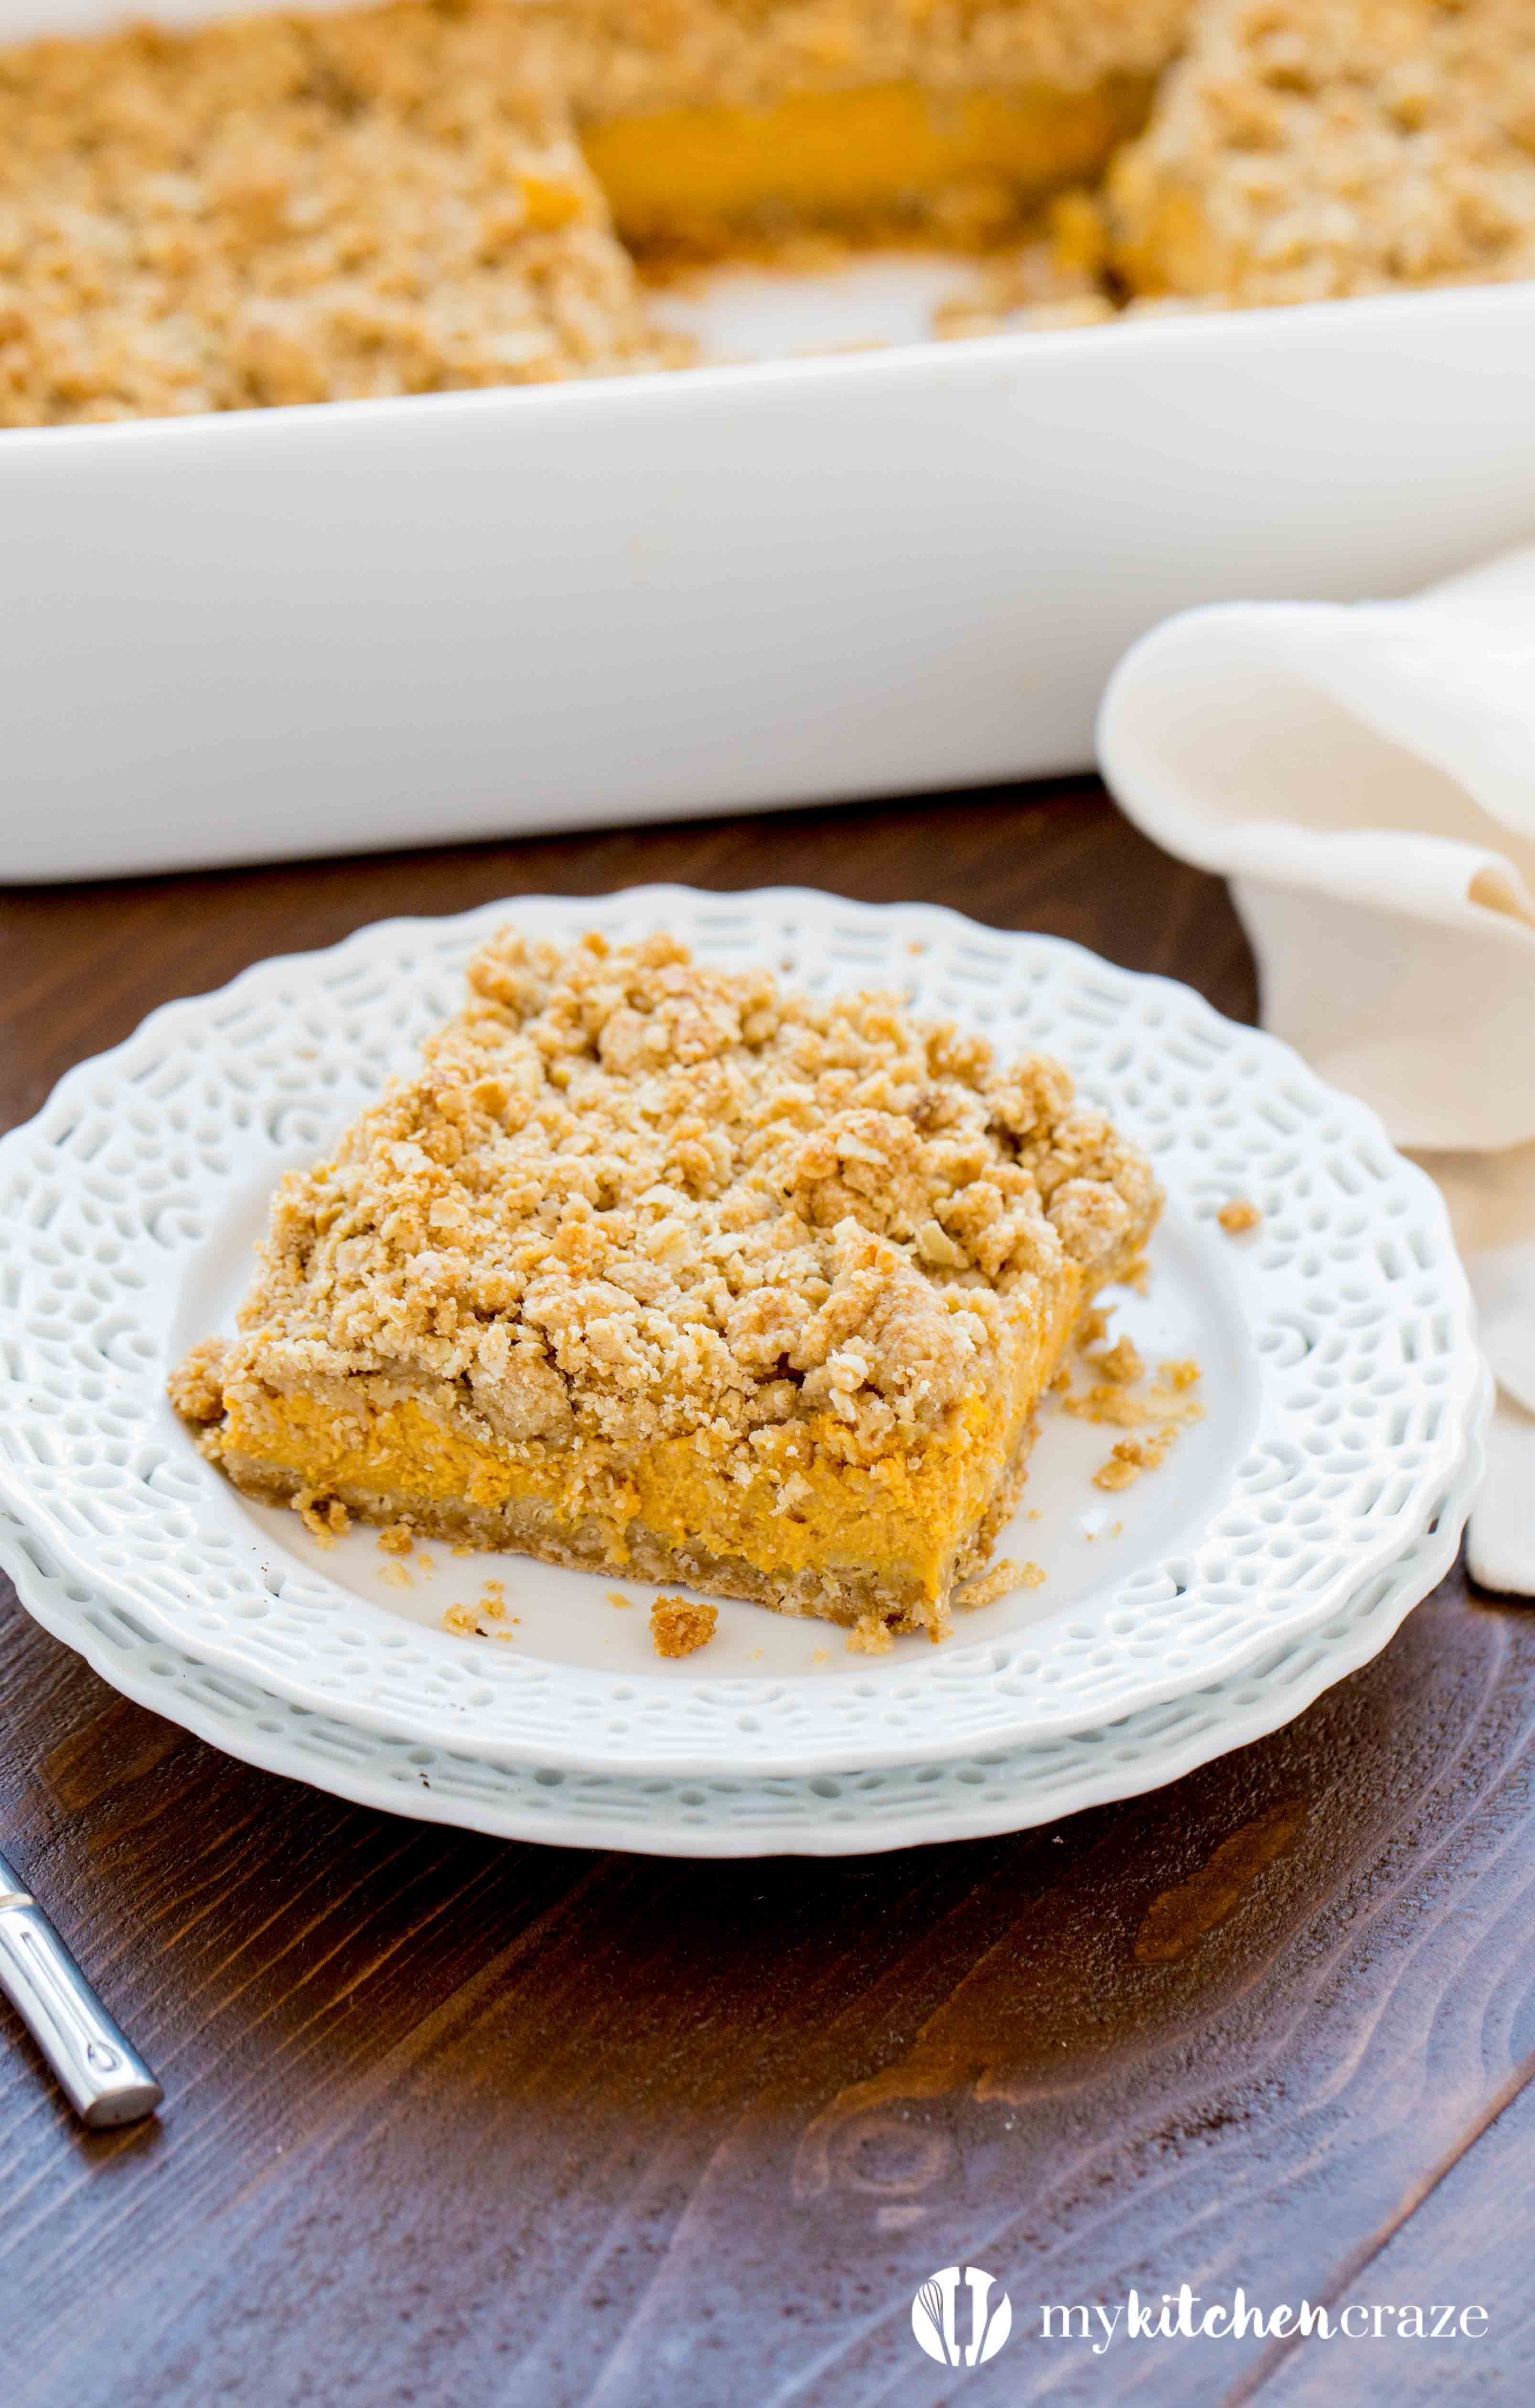 Pumpkin Cheesecake Bars ~ When you combine pumpkin & cheesecake together, what do you get? Delicious PUMPKIN CHEESECAKE BARS! These bars are creamy with a crunchy topping and crust. Yum!